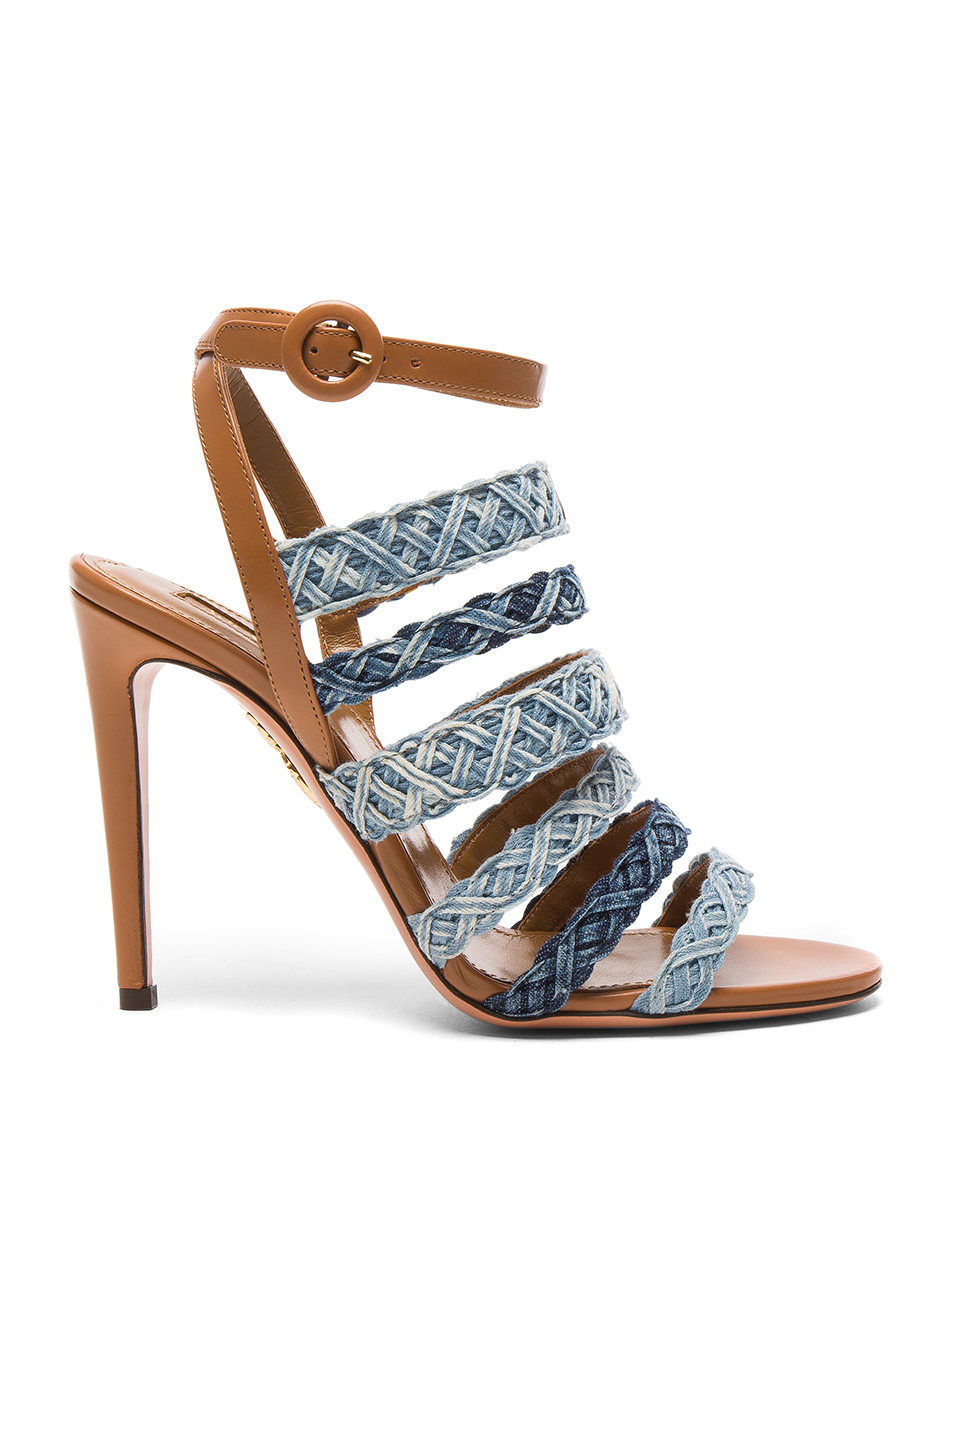 Photo of Aquazzura Braided Denim Tyra Heels in Blue online sales